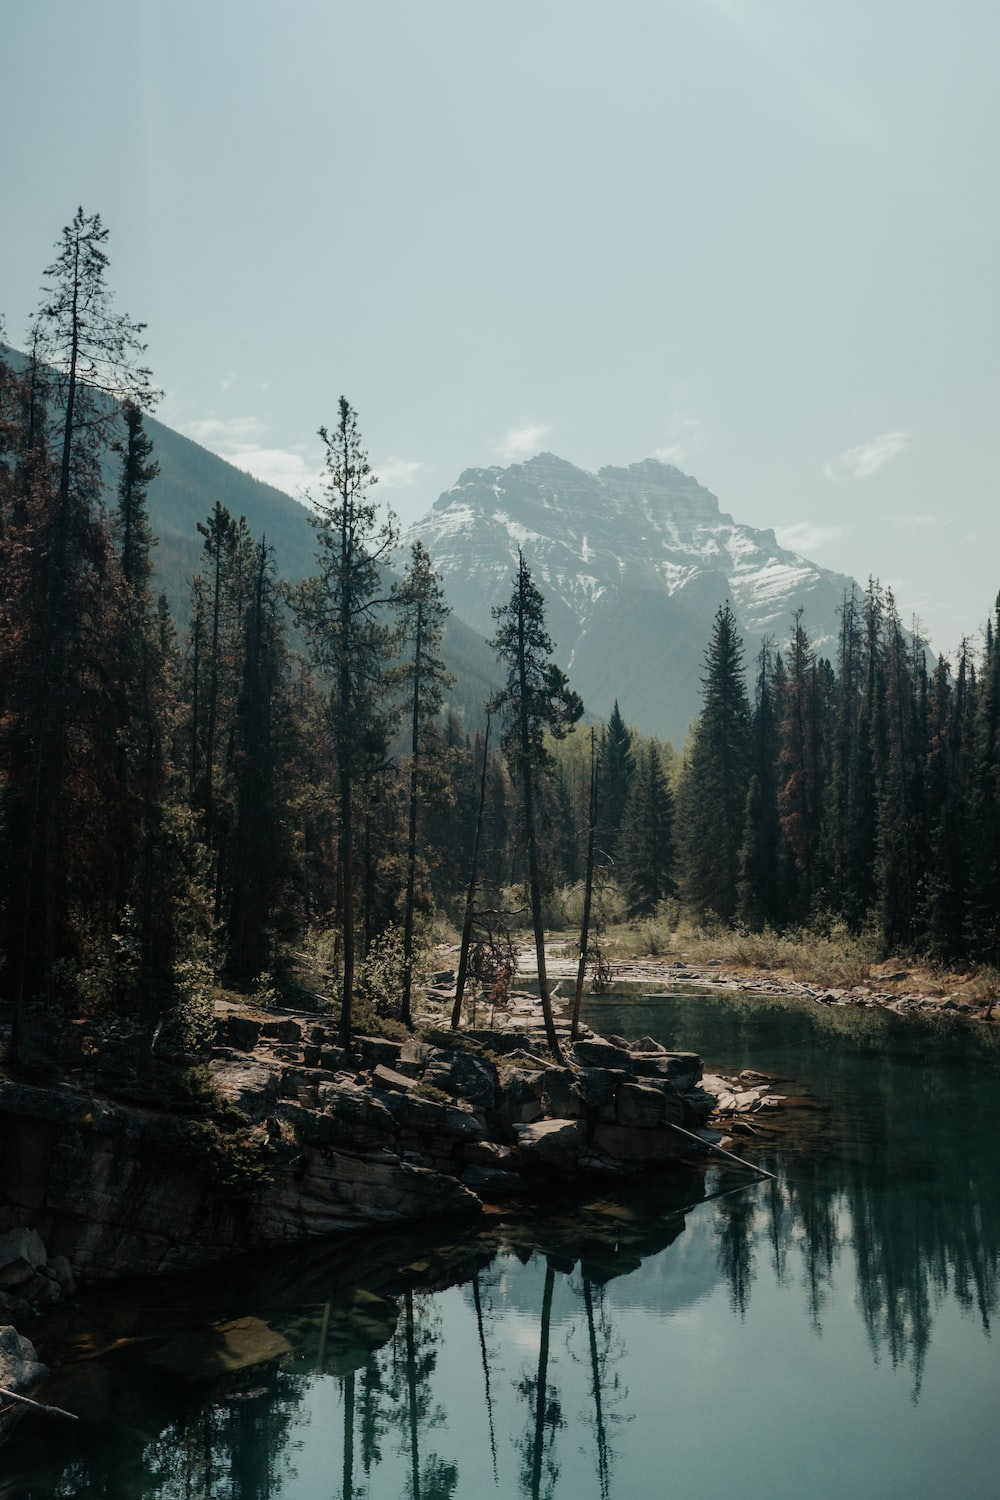 body of water surrounded with trees at daytime